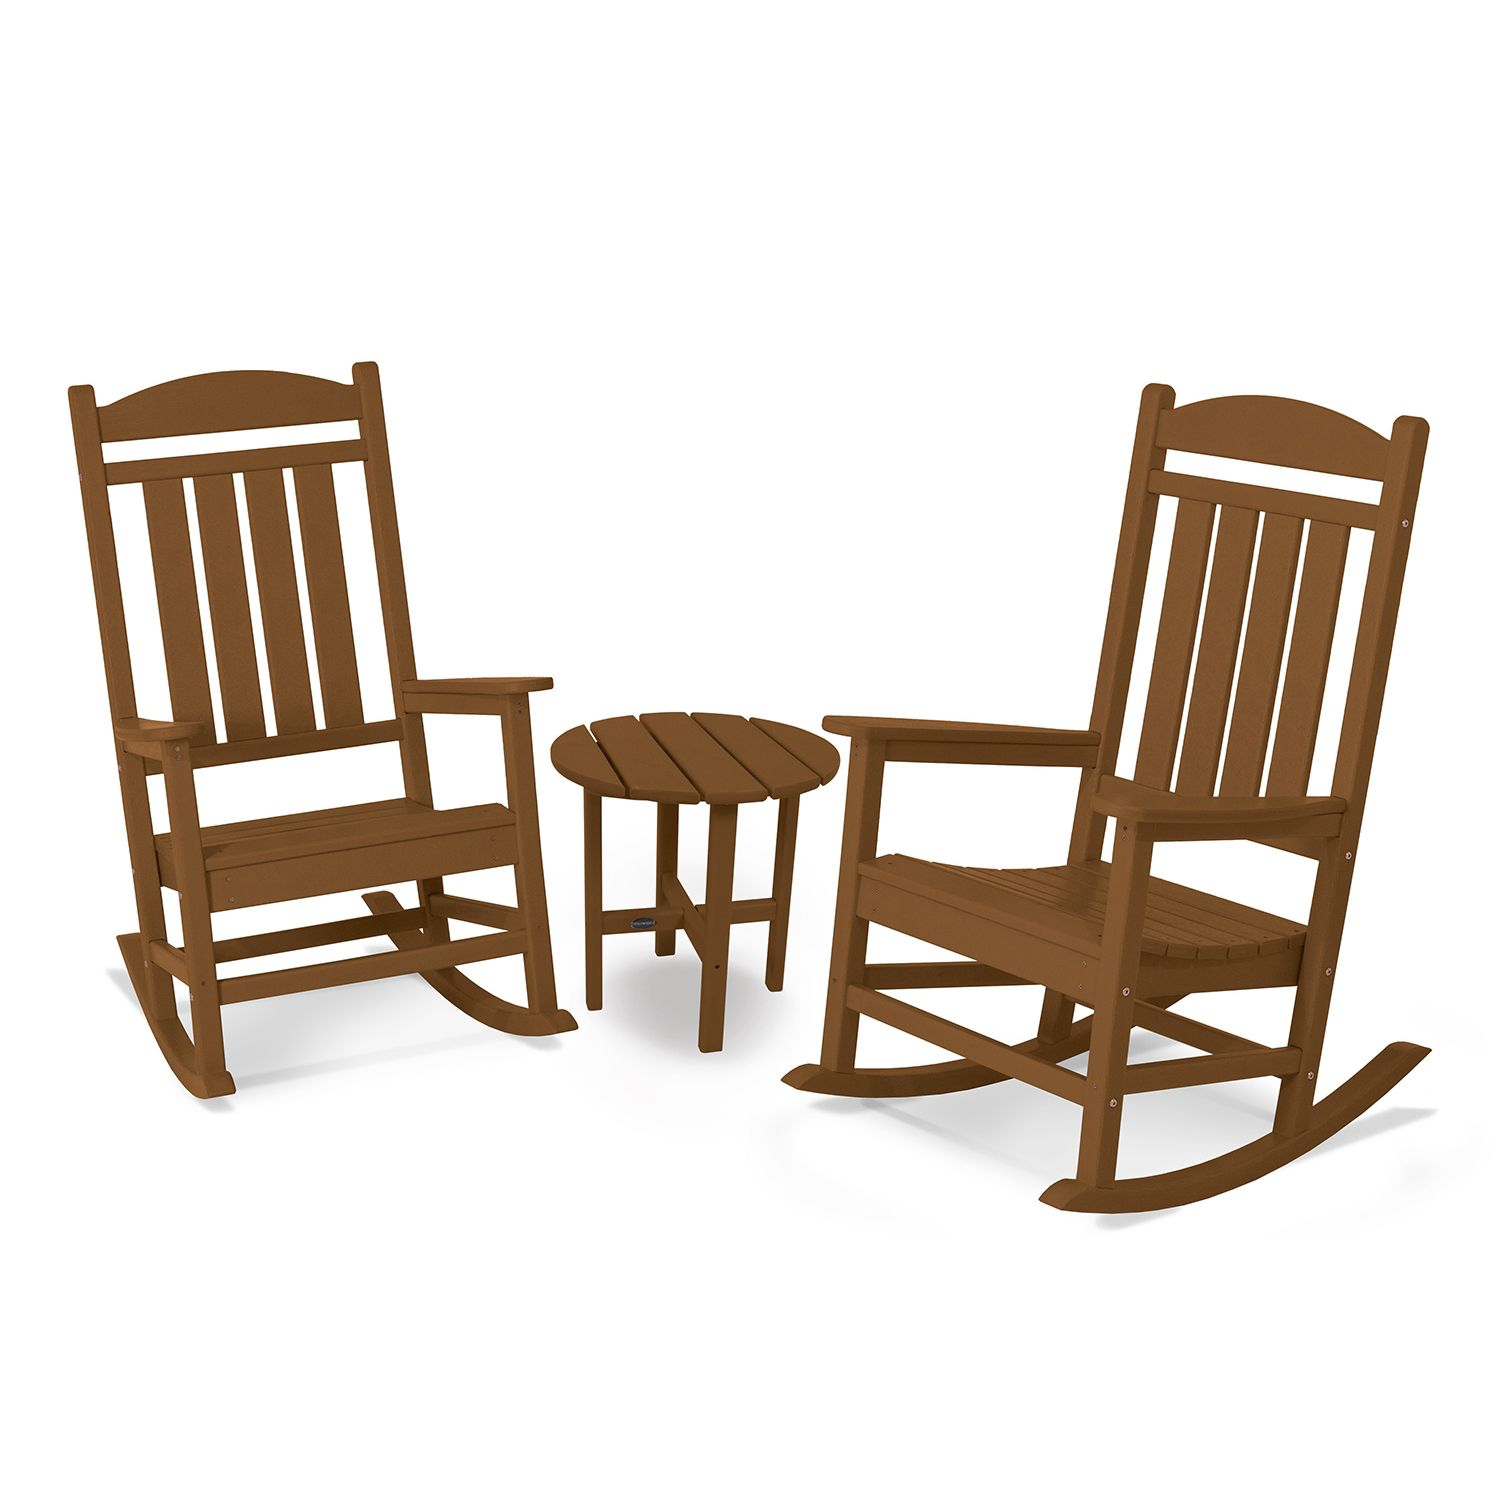 Ordinaire POLYWOOD® 3 Piece Presidential Outdoor Rocking Chair U0026 Round Side Table Set